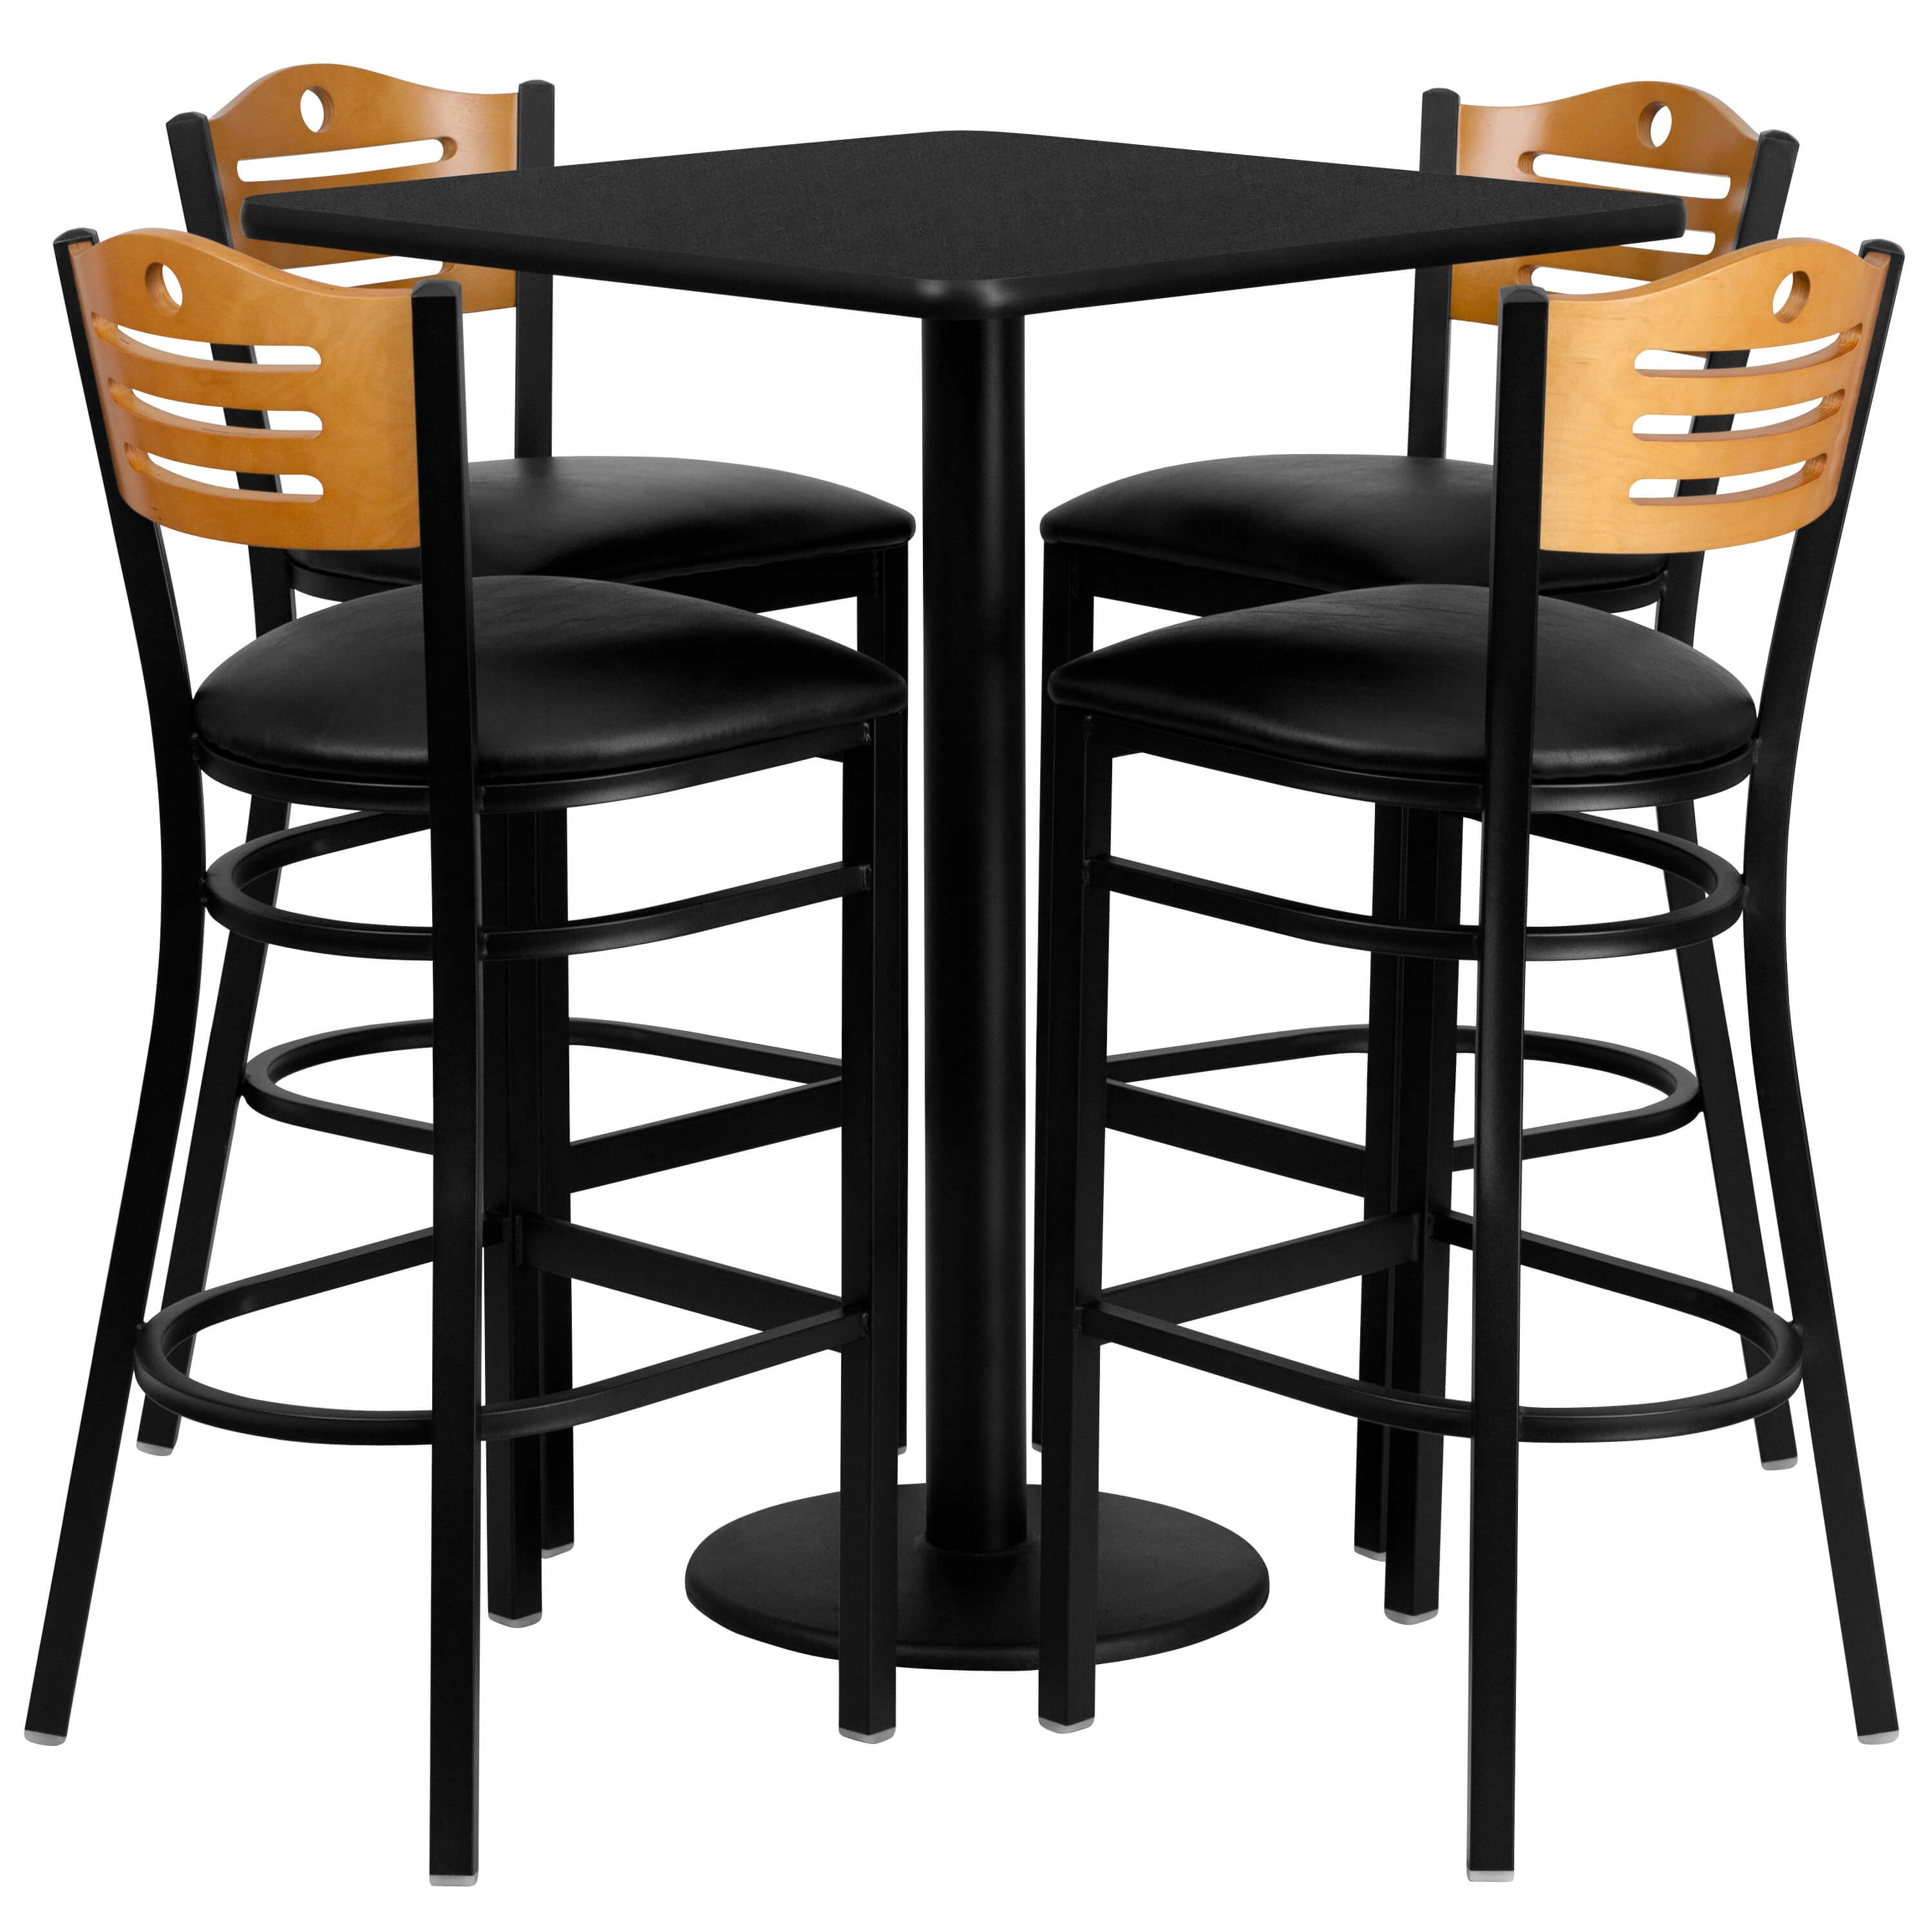 cafe-tables-and-chairs-30inch-pub-style-dining-set.jpg